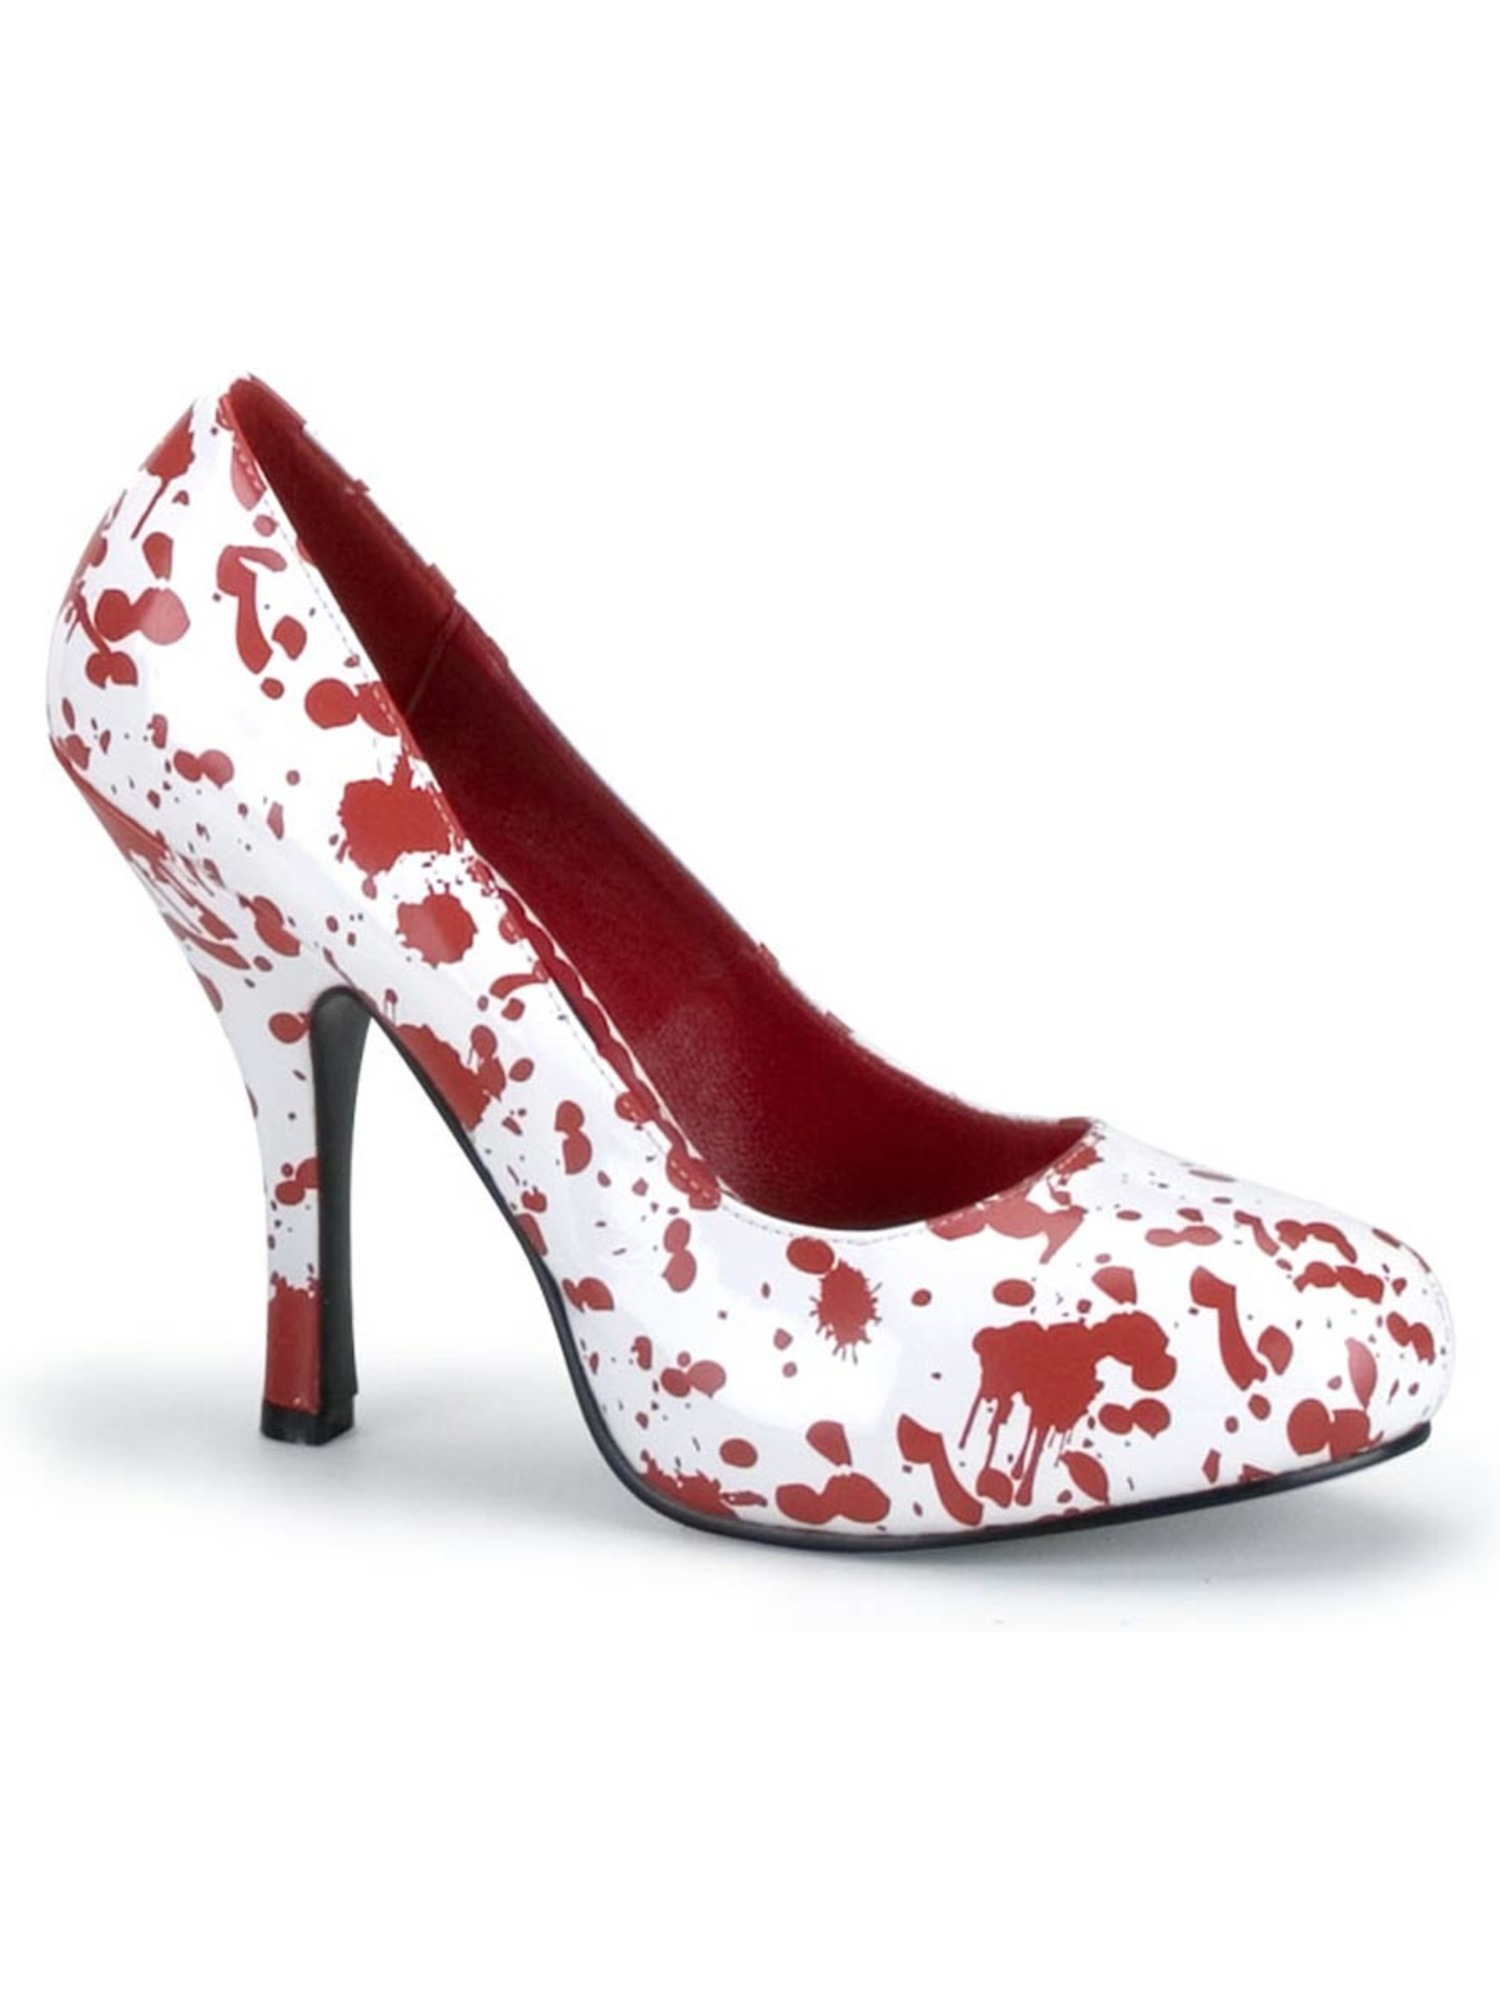 Blood Splatter Shoe Theatre Costumes Shoes White Red